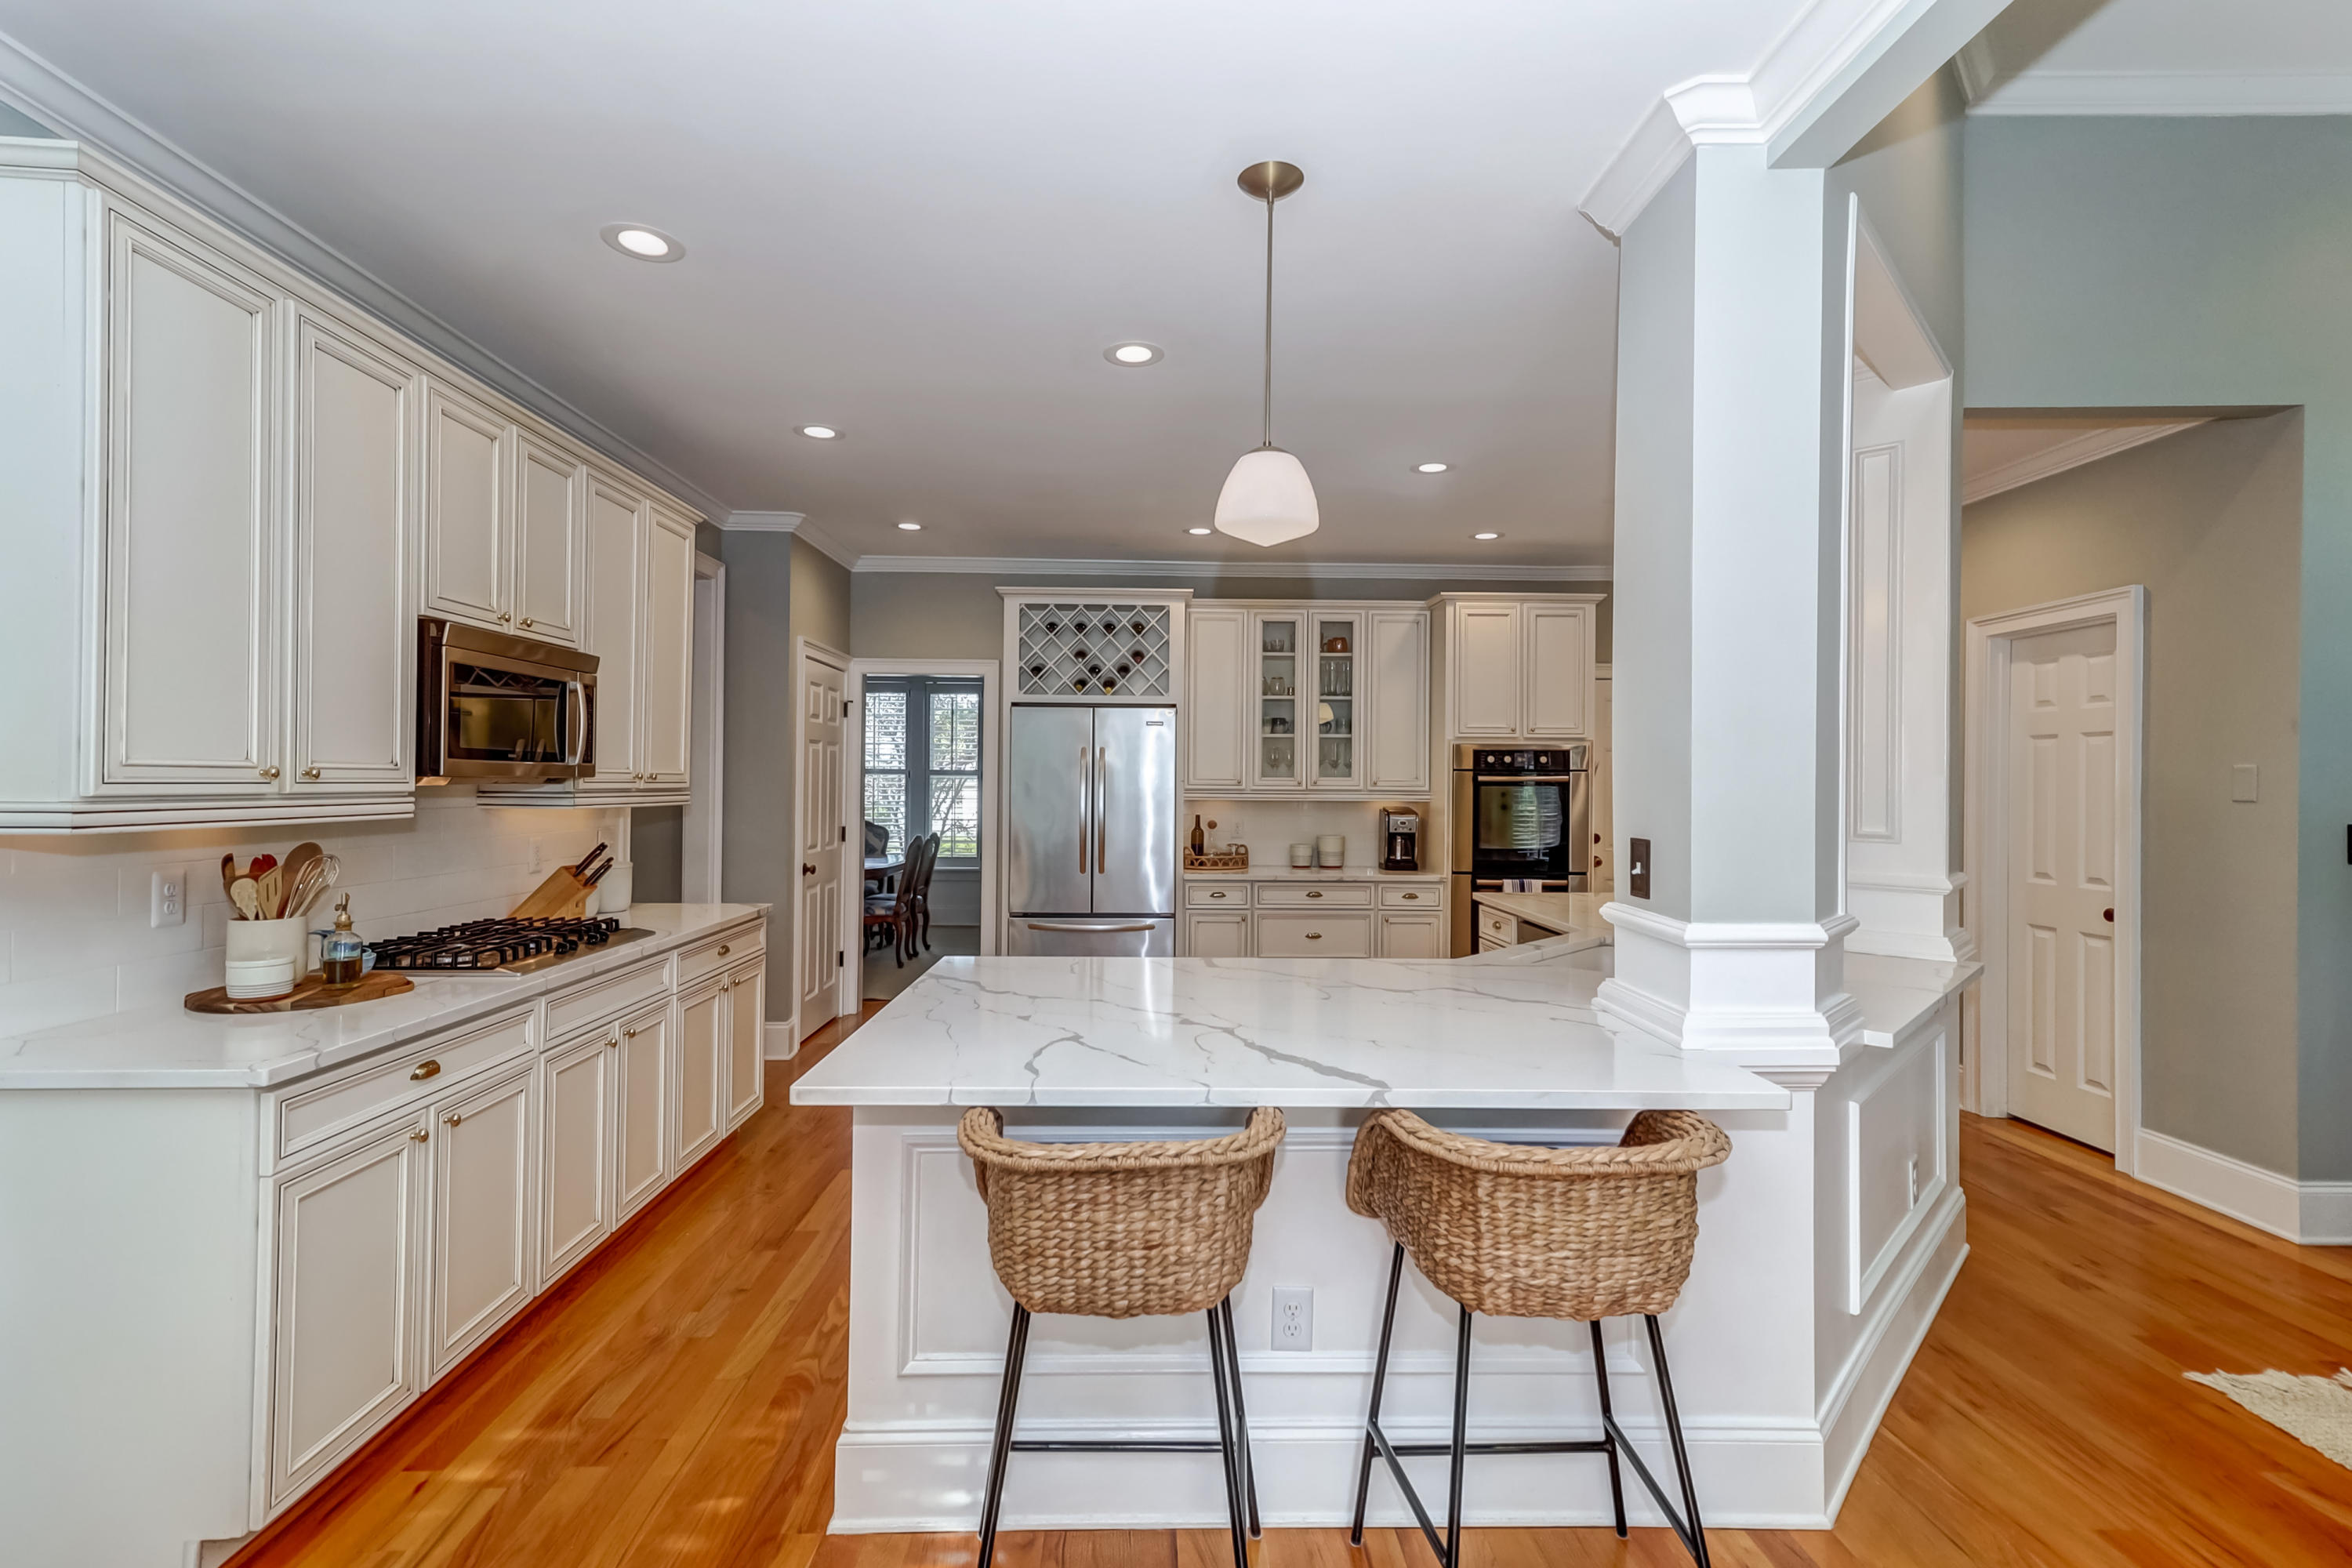 Woodward Pointe Homes For Sale - 657 White Chapel, Charleston, SC - 44